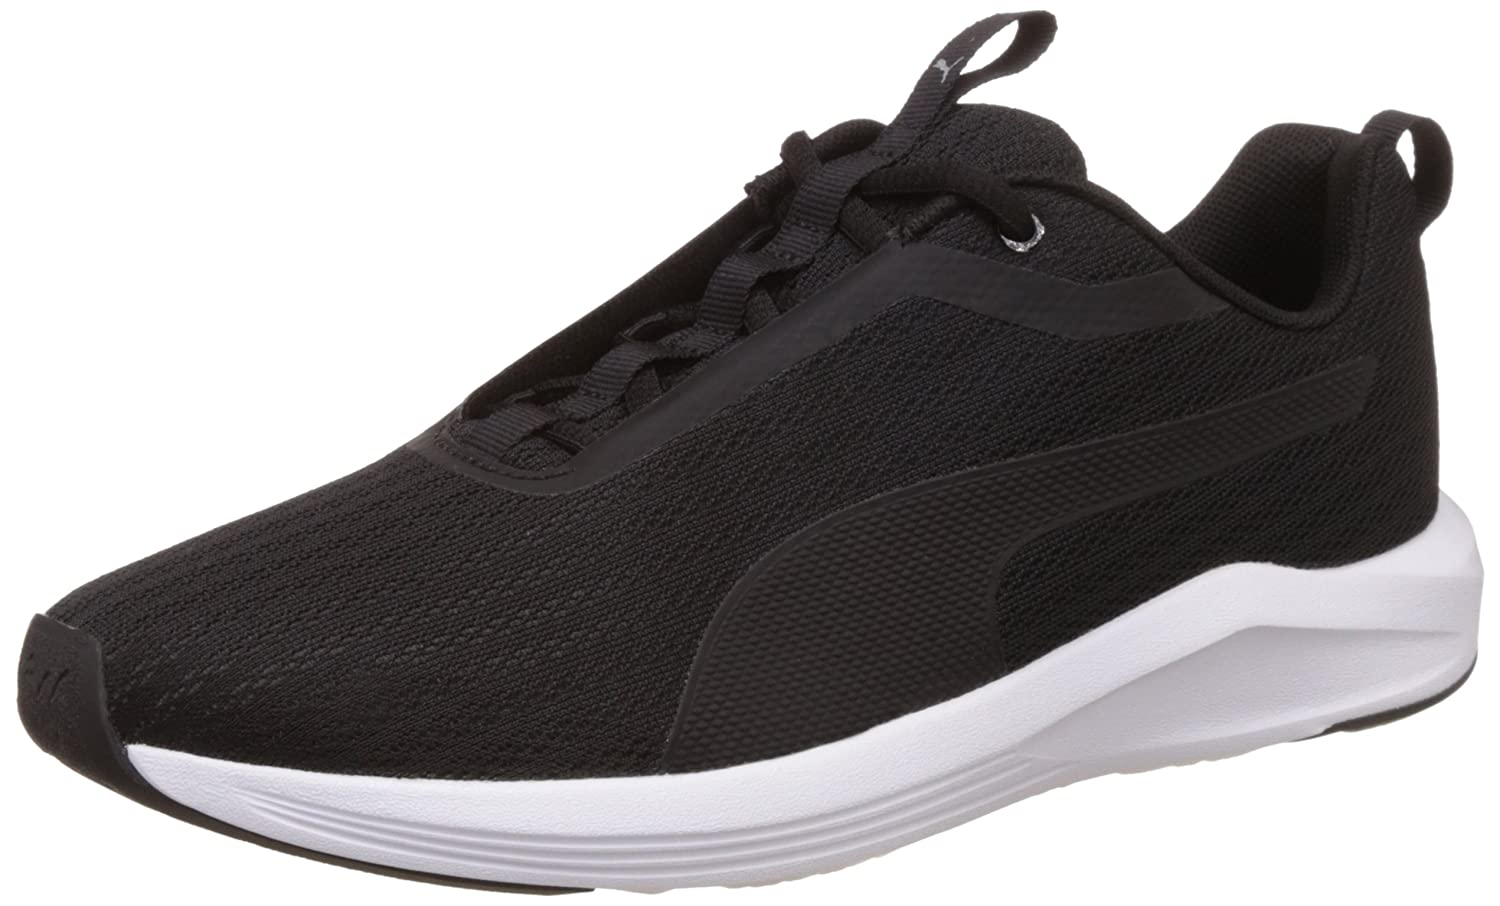 Puma Prowl Donna Wn's Scarpe Sportive Indoor Donna Prowl Nero Puma Black Puma White 01 652690